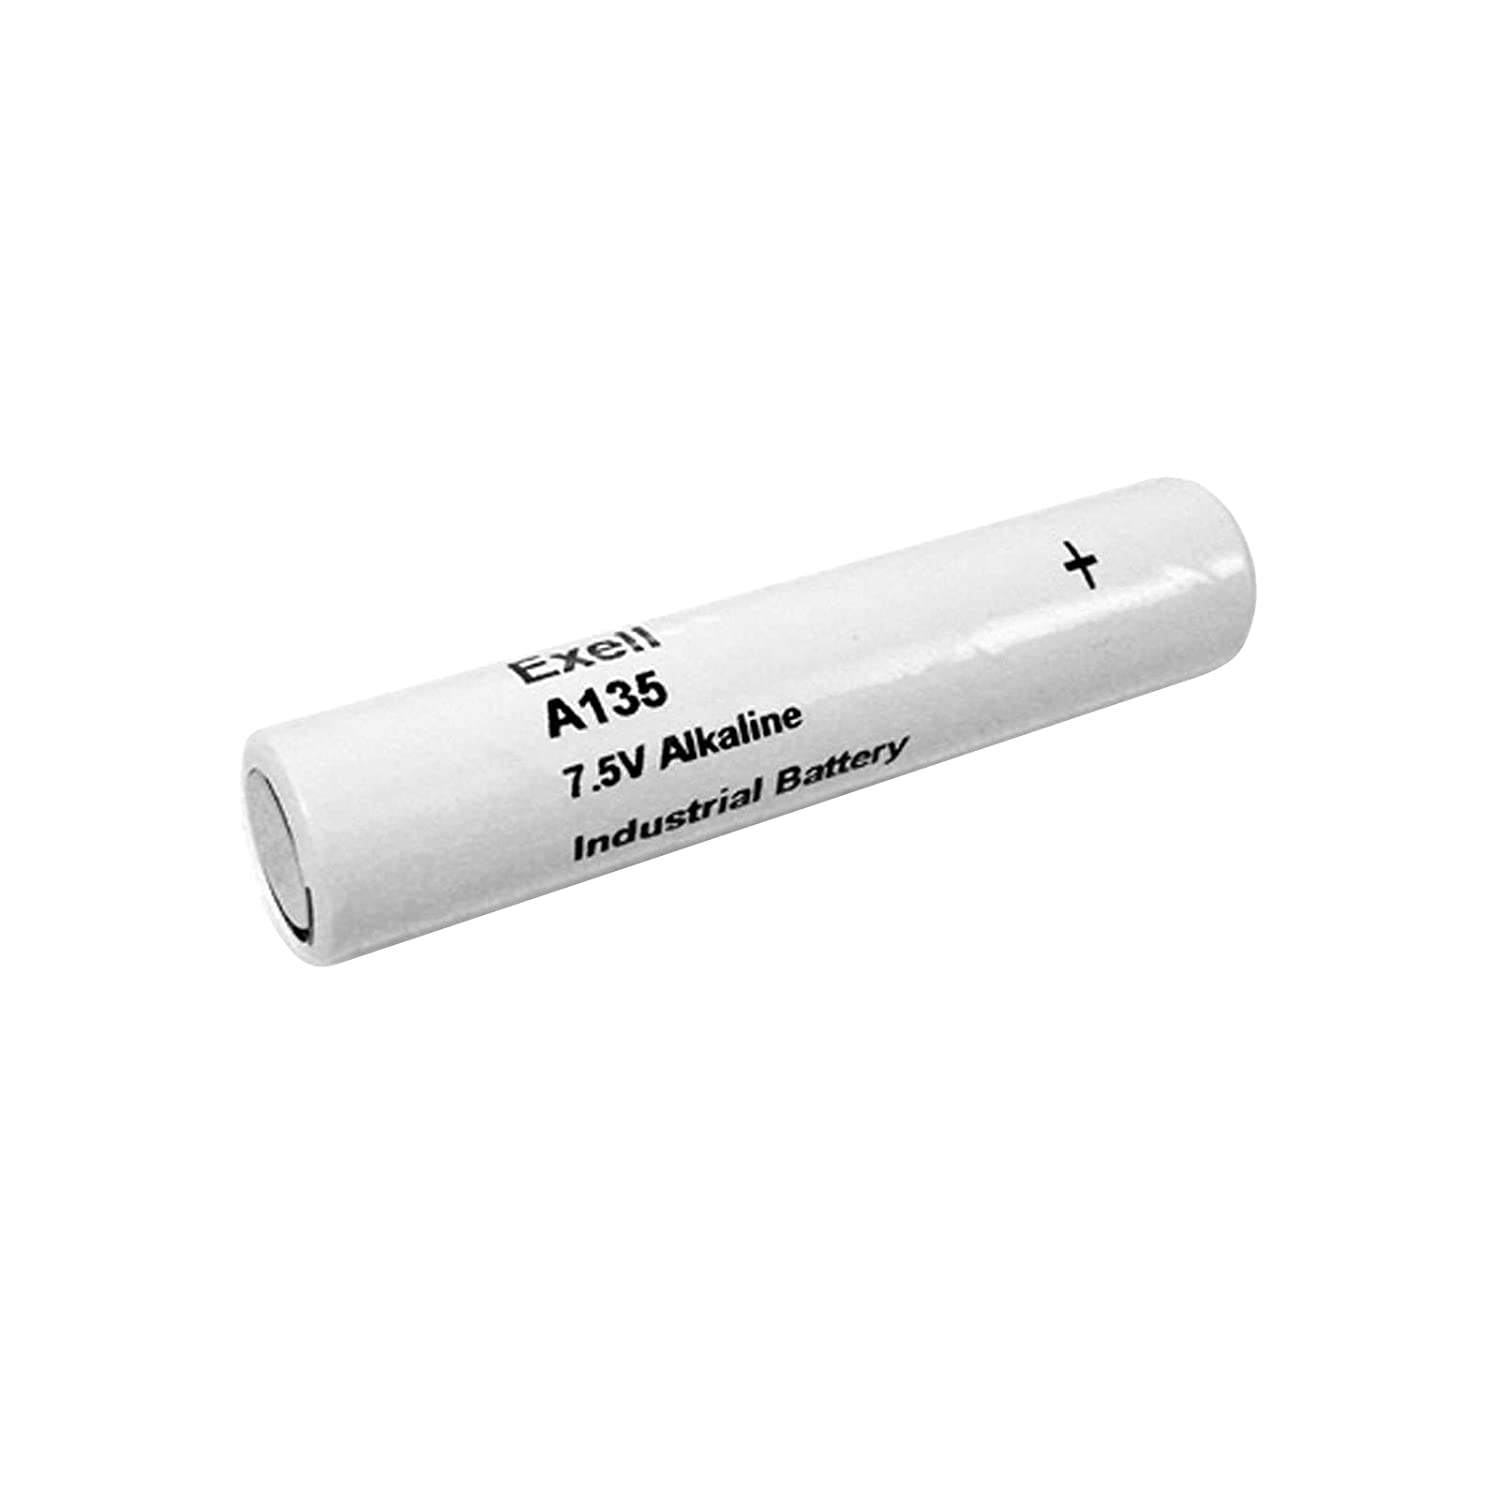 The A135 is a battery replacement for the NEDA 1505A battery